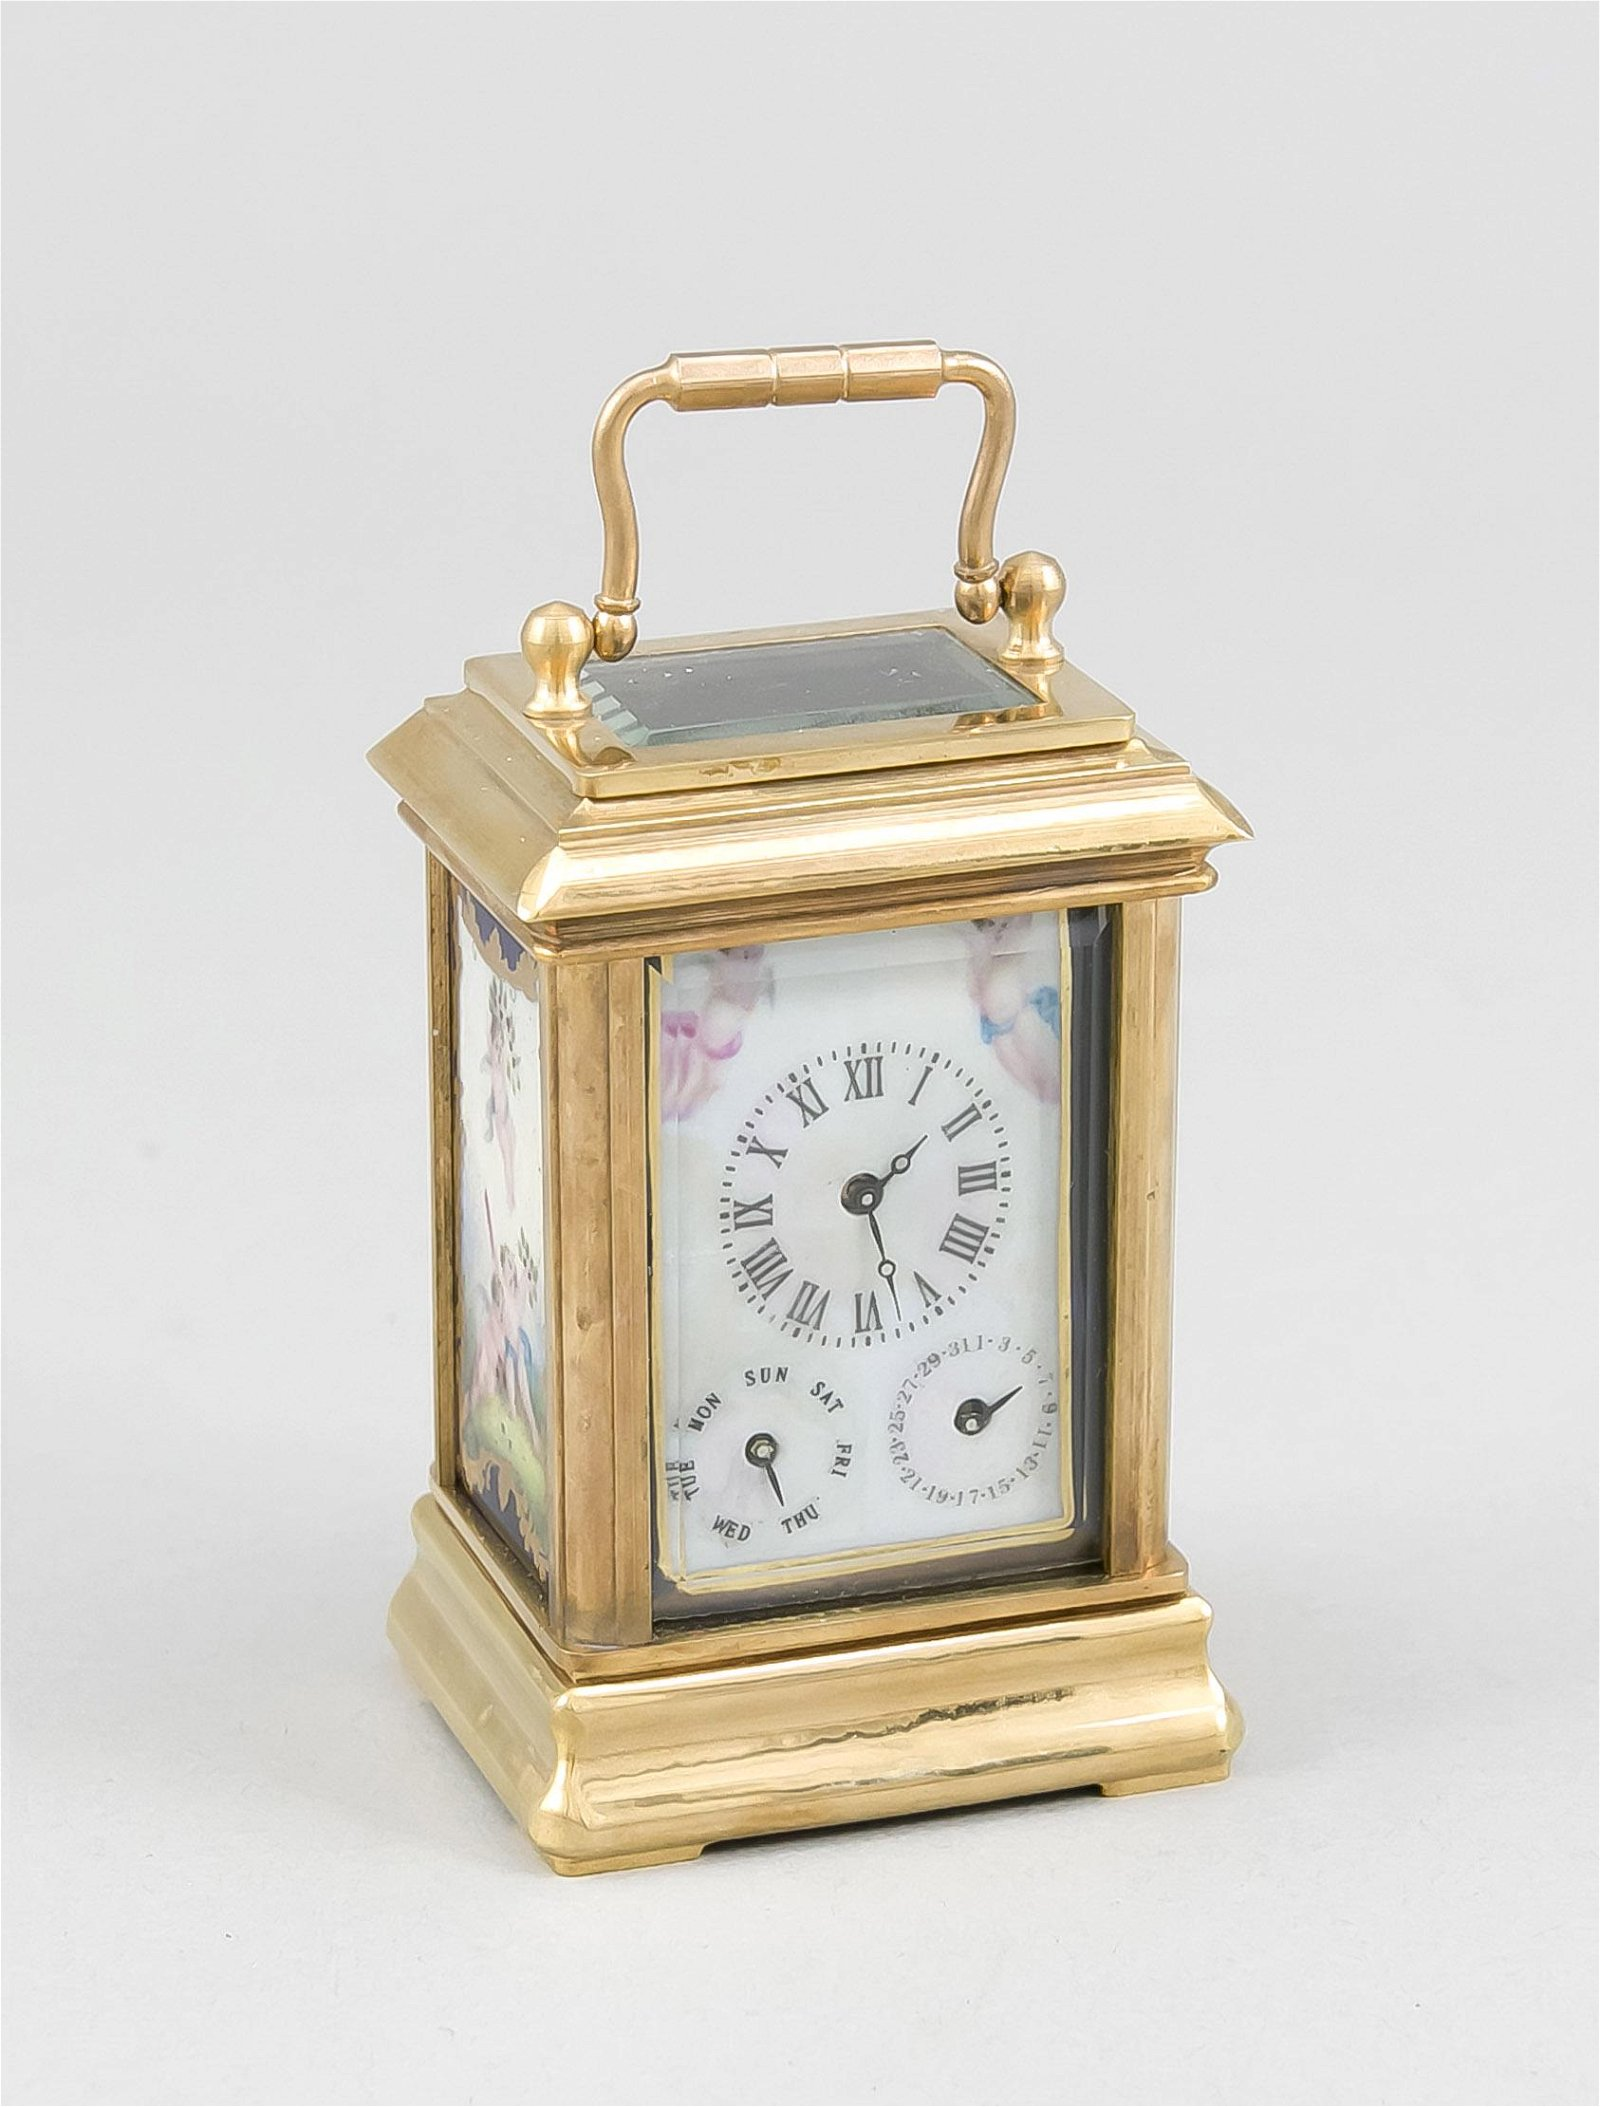 Small brass travel alarm clock with porcelain plaques.